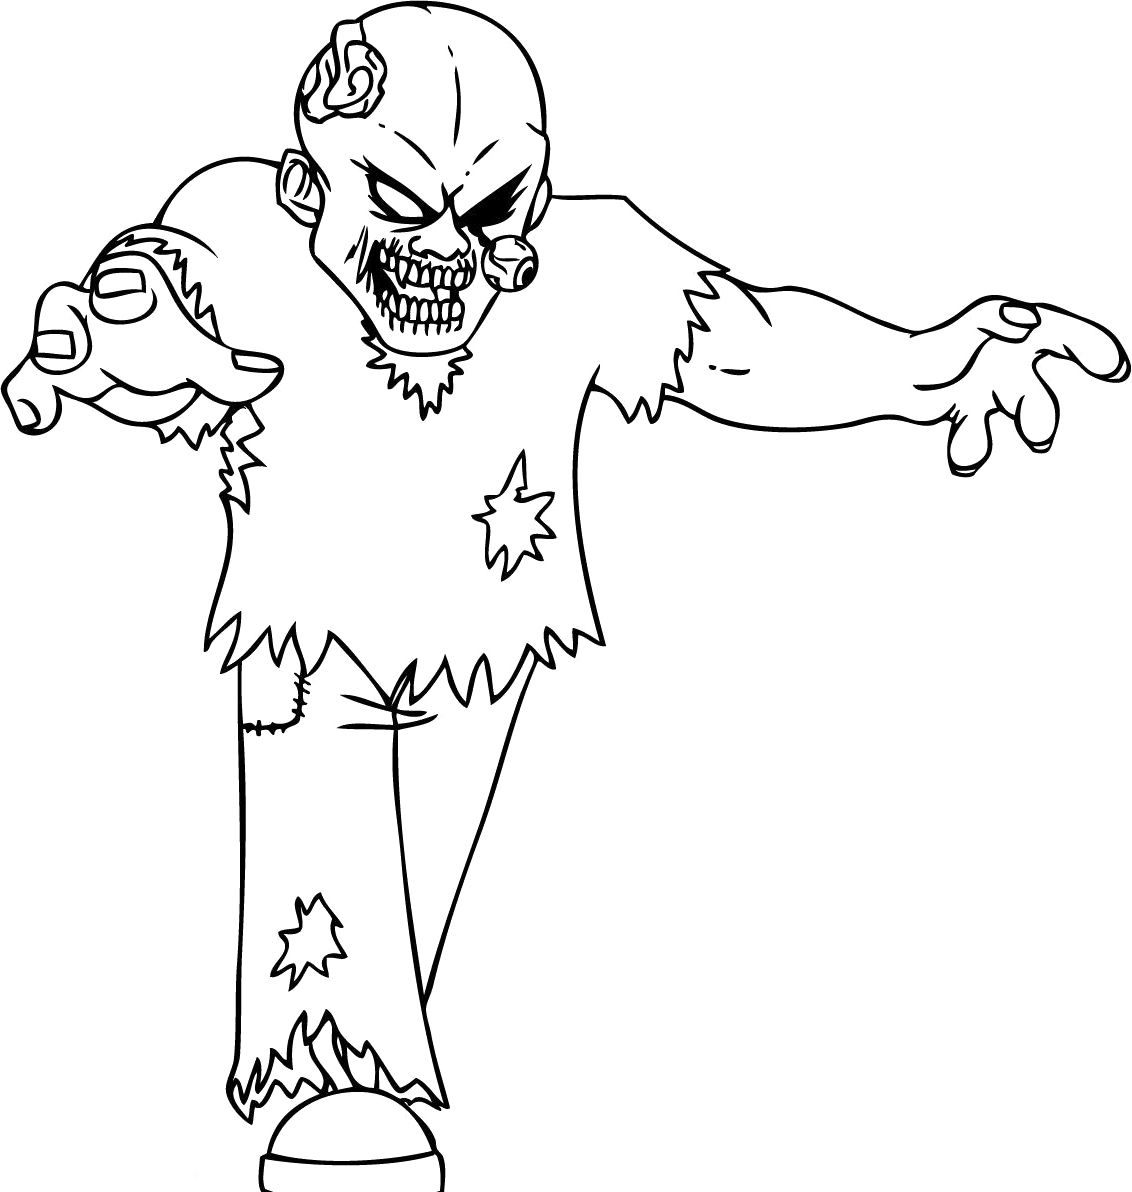 pictures of zombies to color scary zombie coloring page coloring home to of zombies color pictures